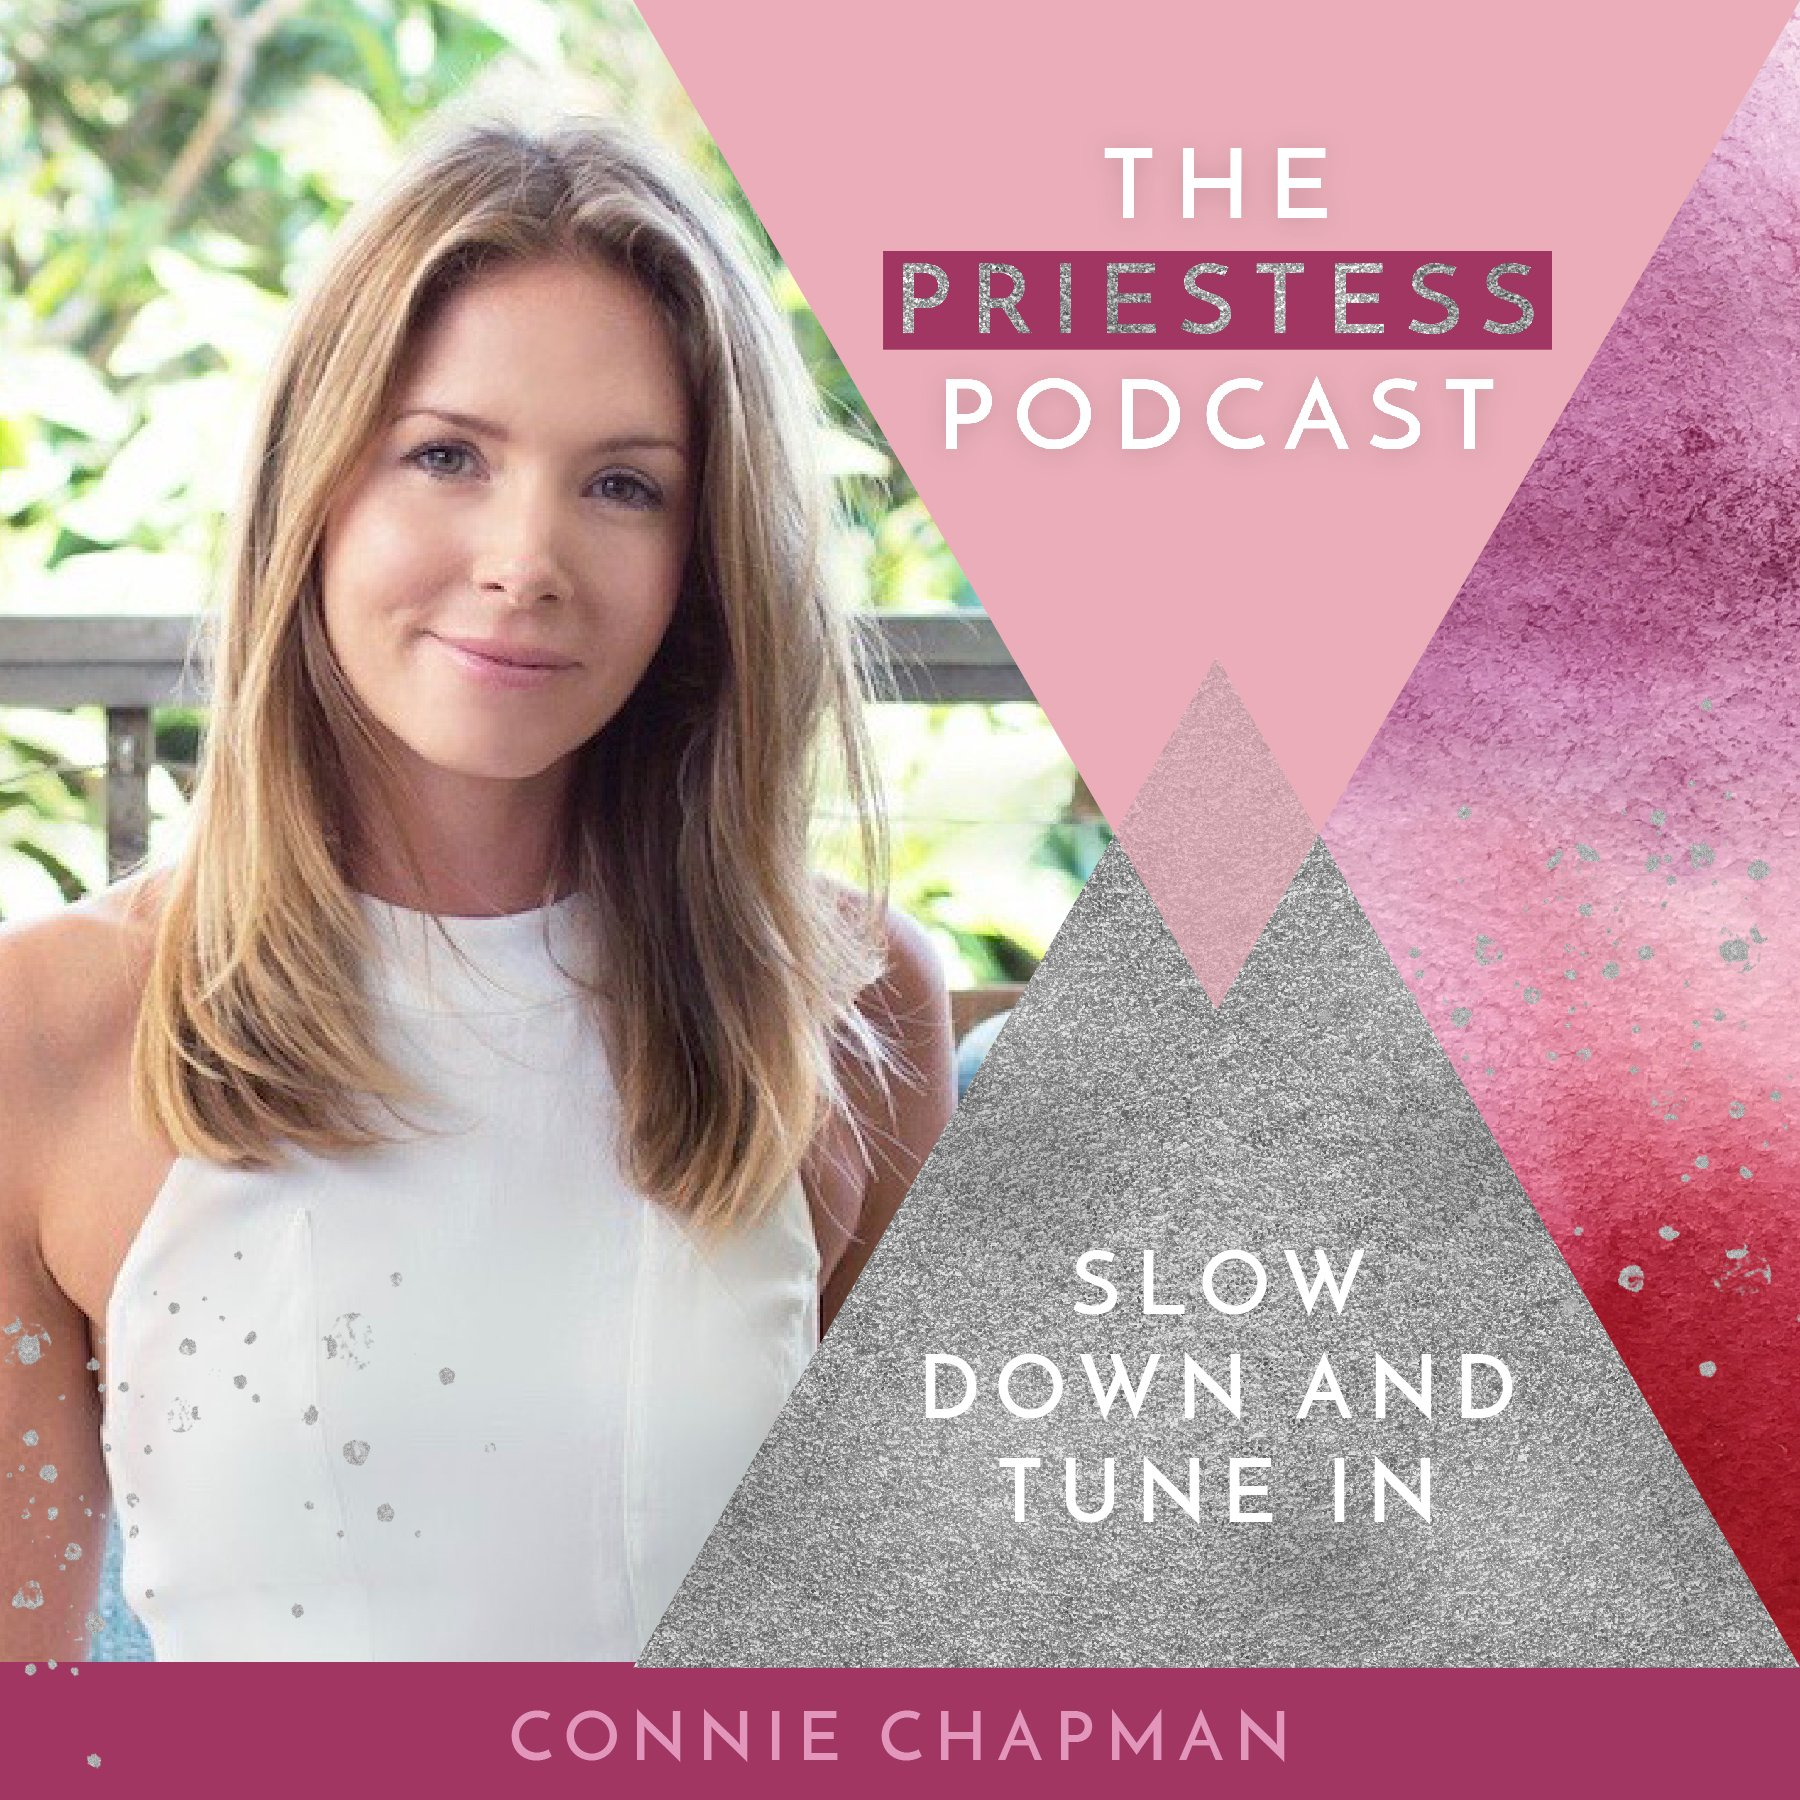 Connie Chapman on Slow Down and Tune In